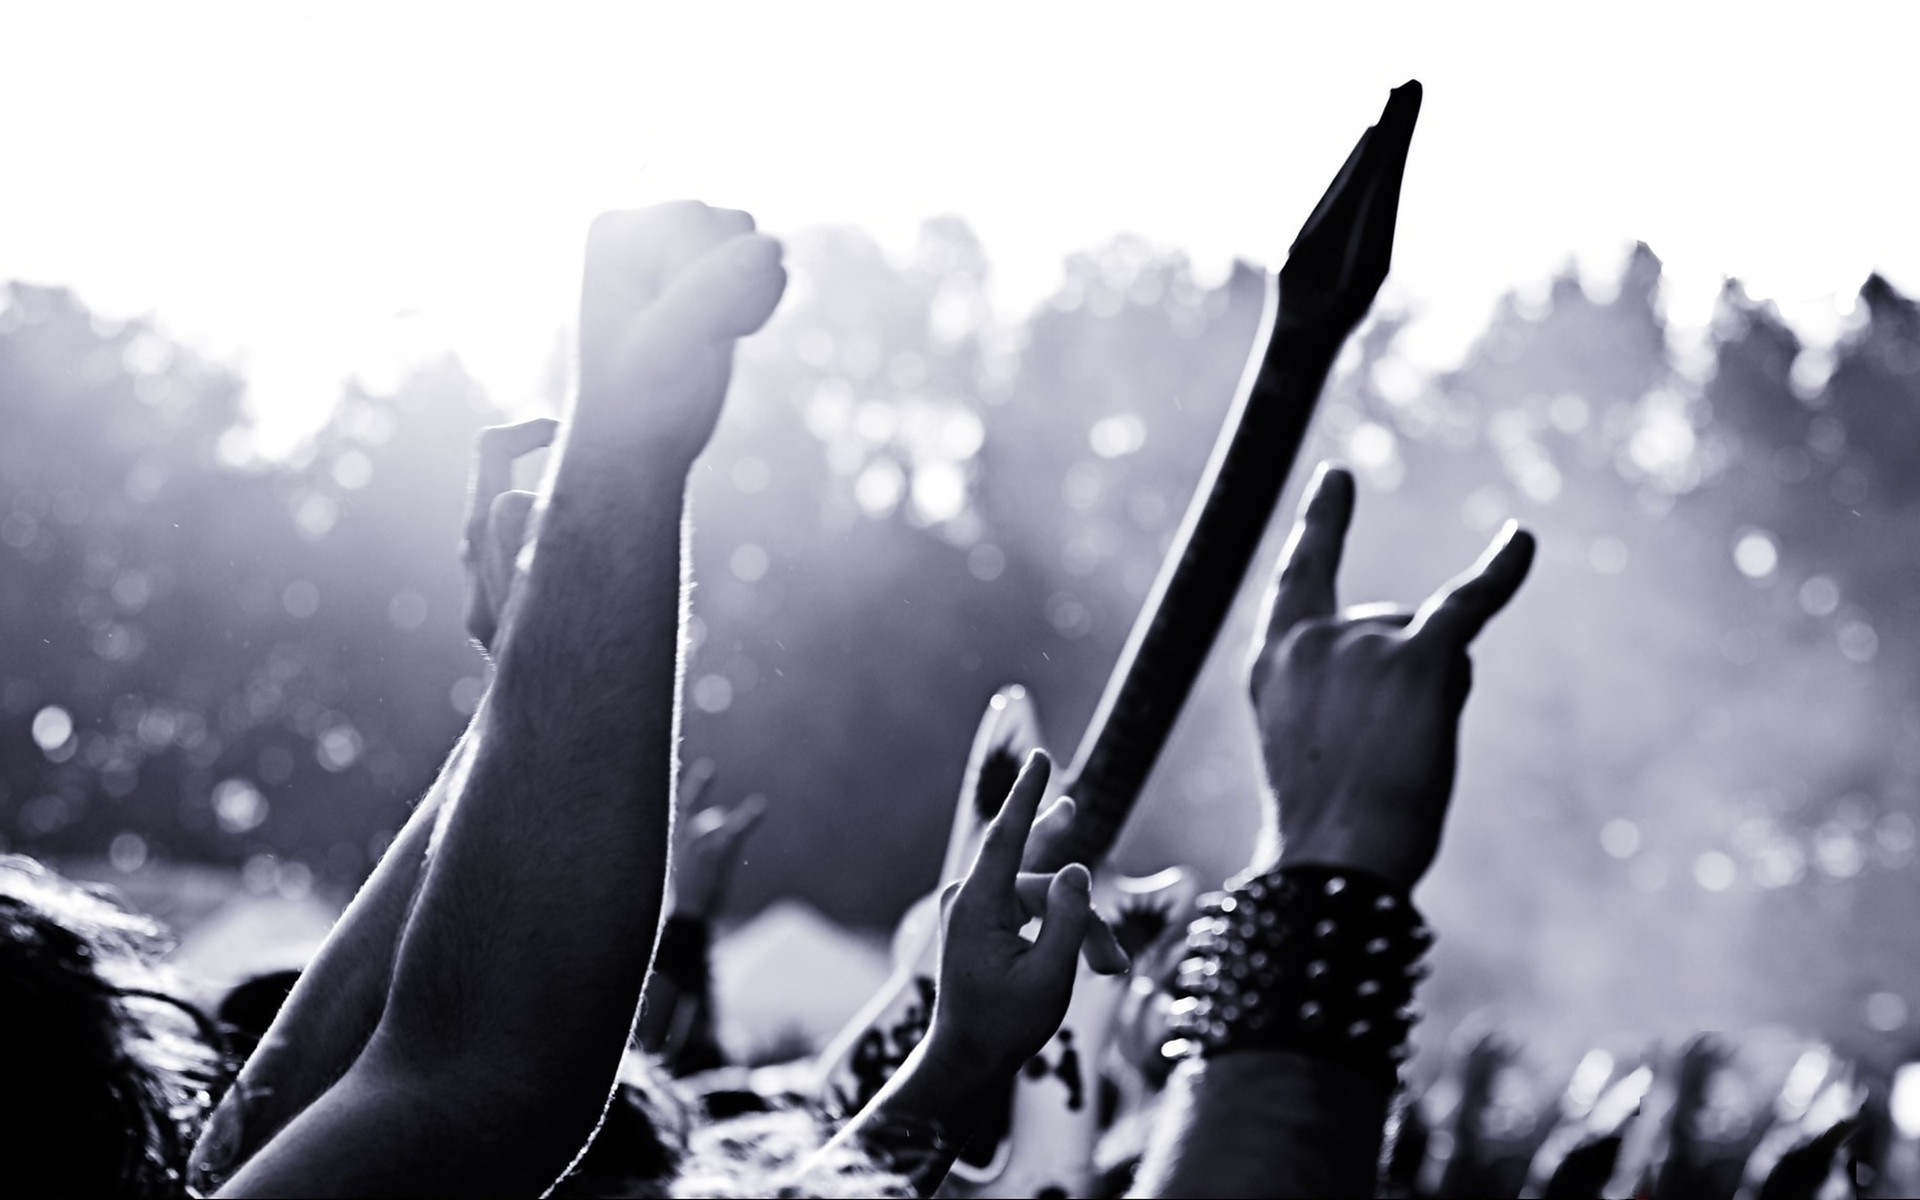 rock concert wallpaper   ForWallpapercom 1920x1200